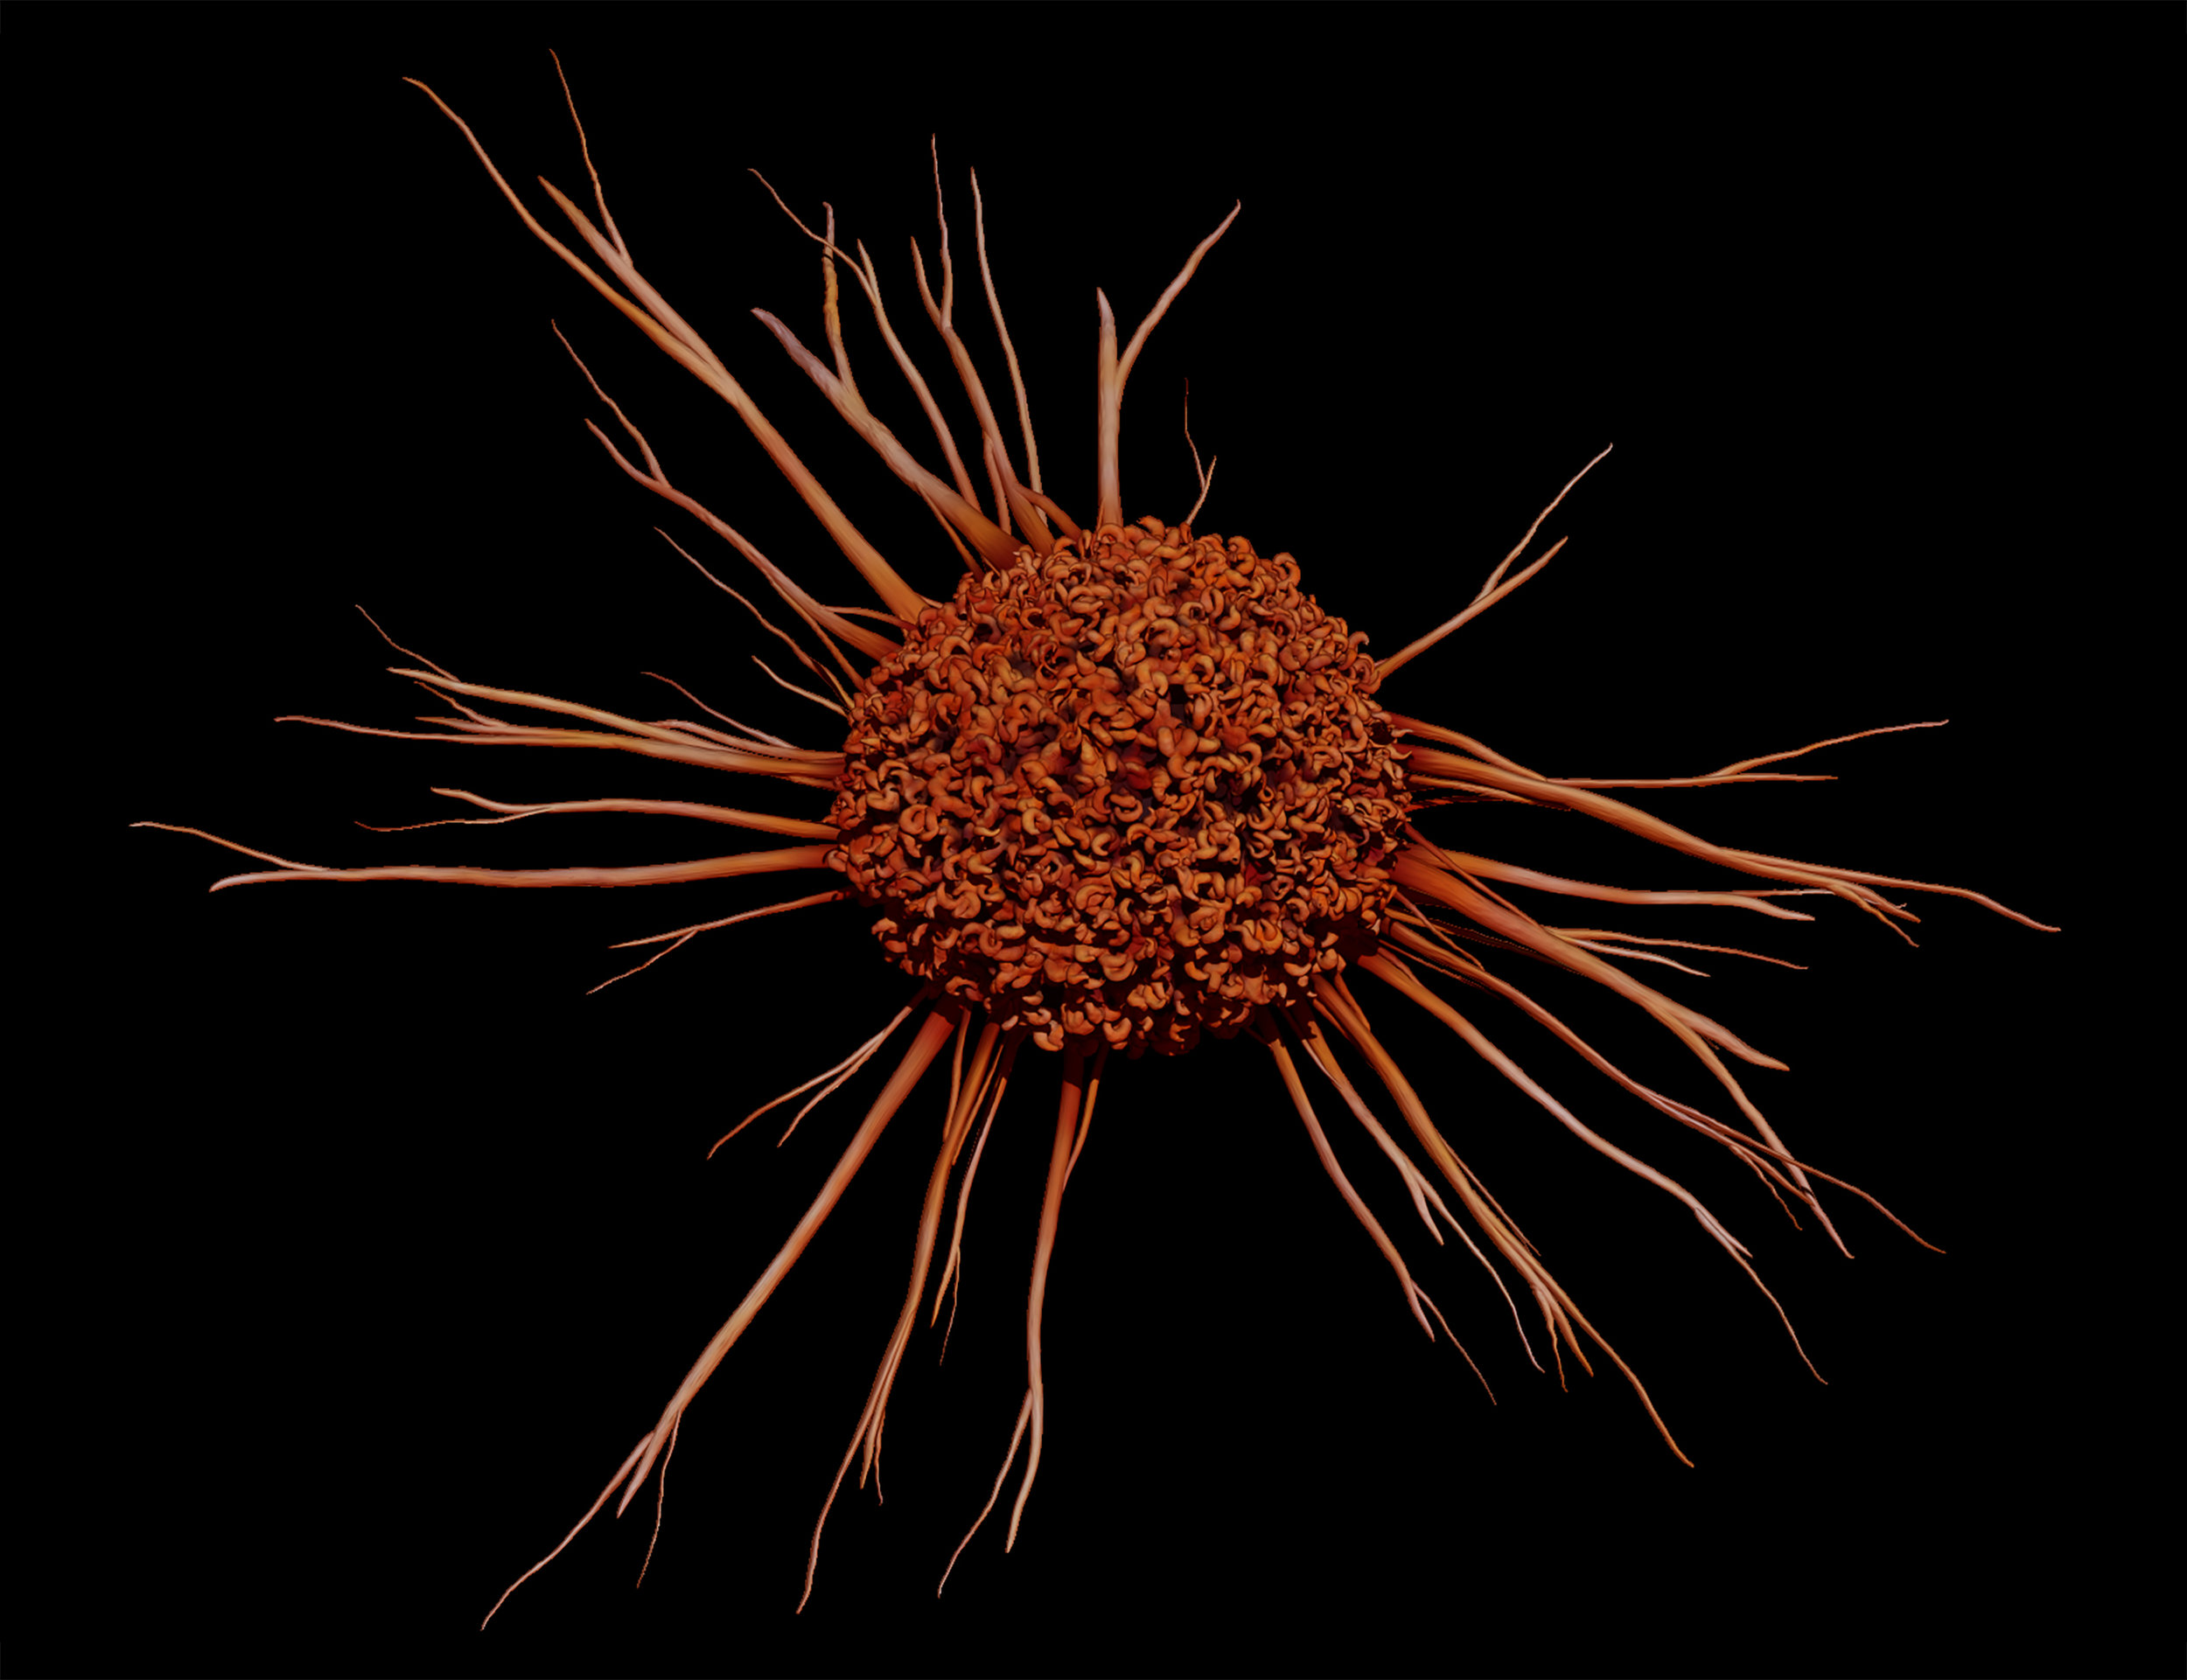 Cancer Cell, 3D Illustration